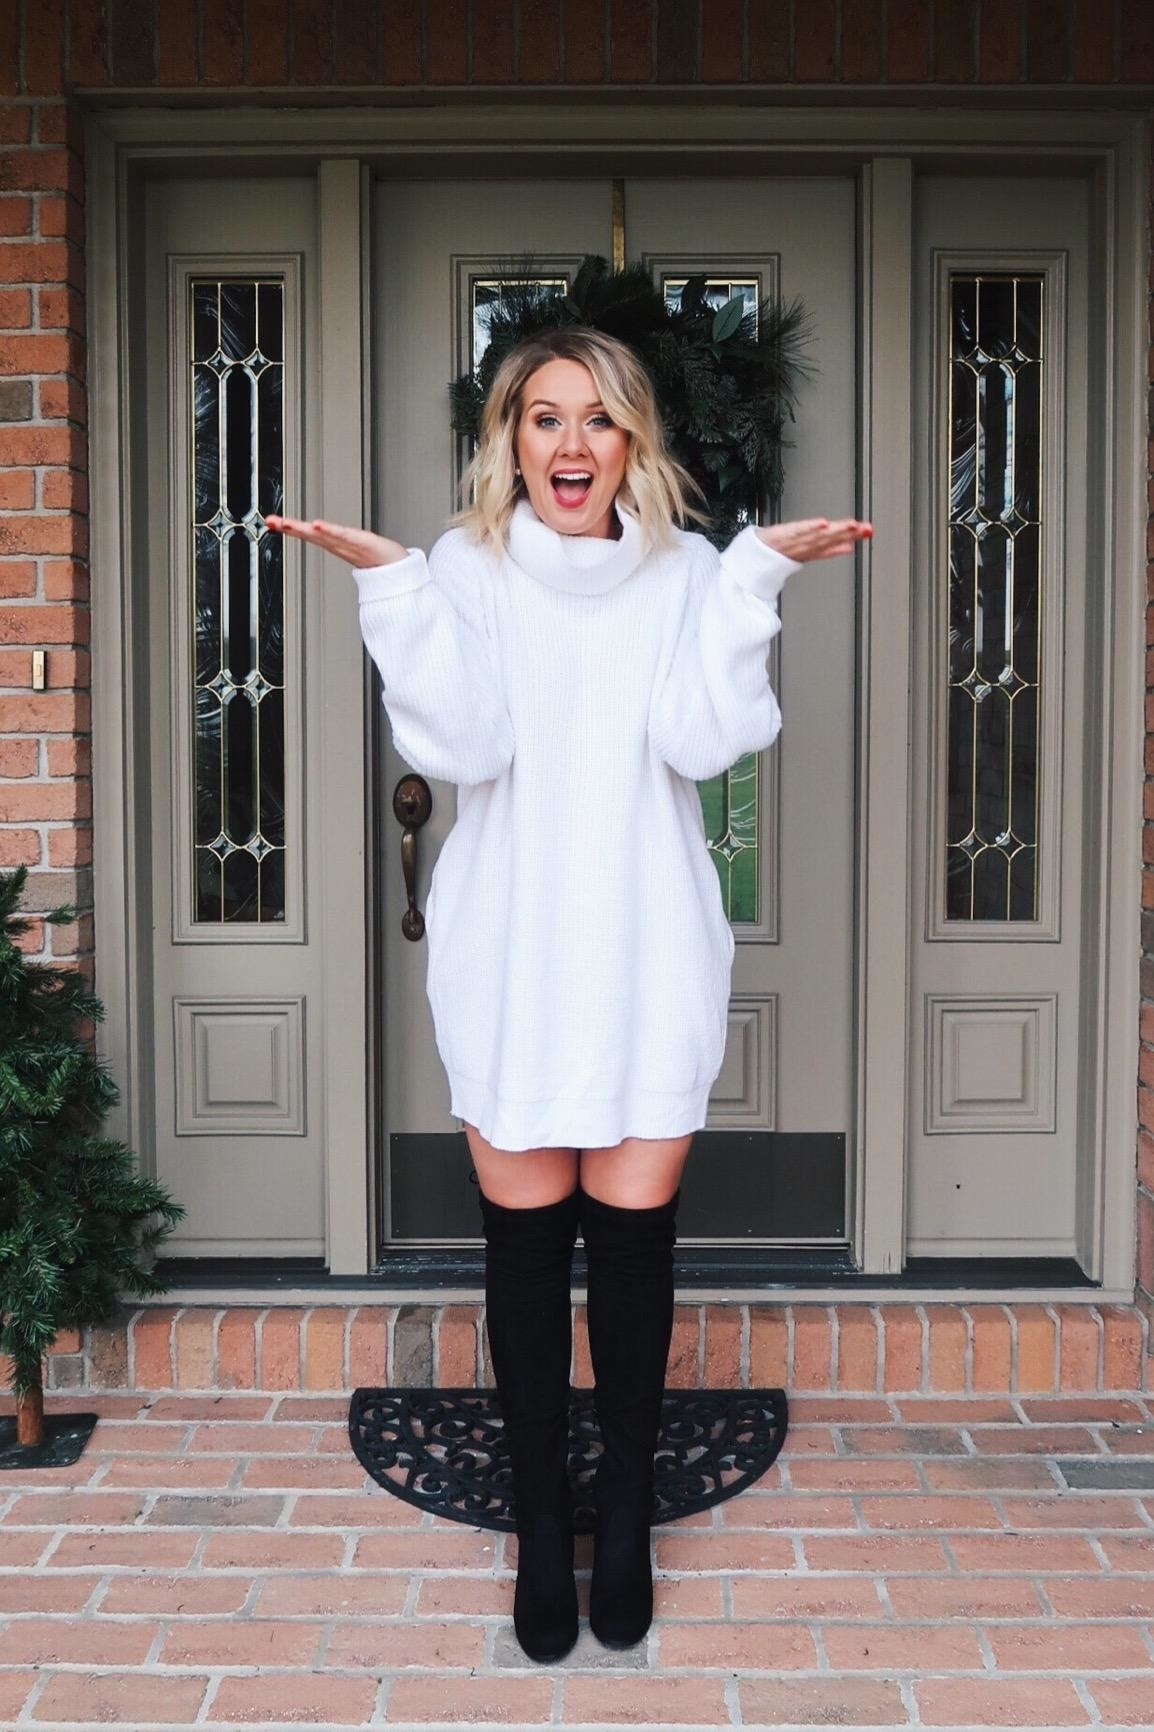 Reviewer in the white dress with over-the-knee boots